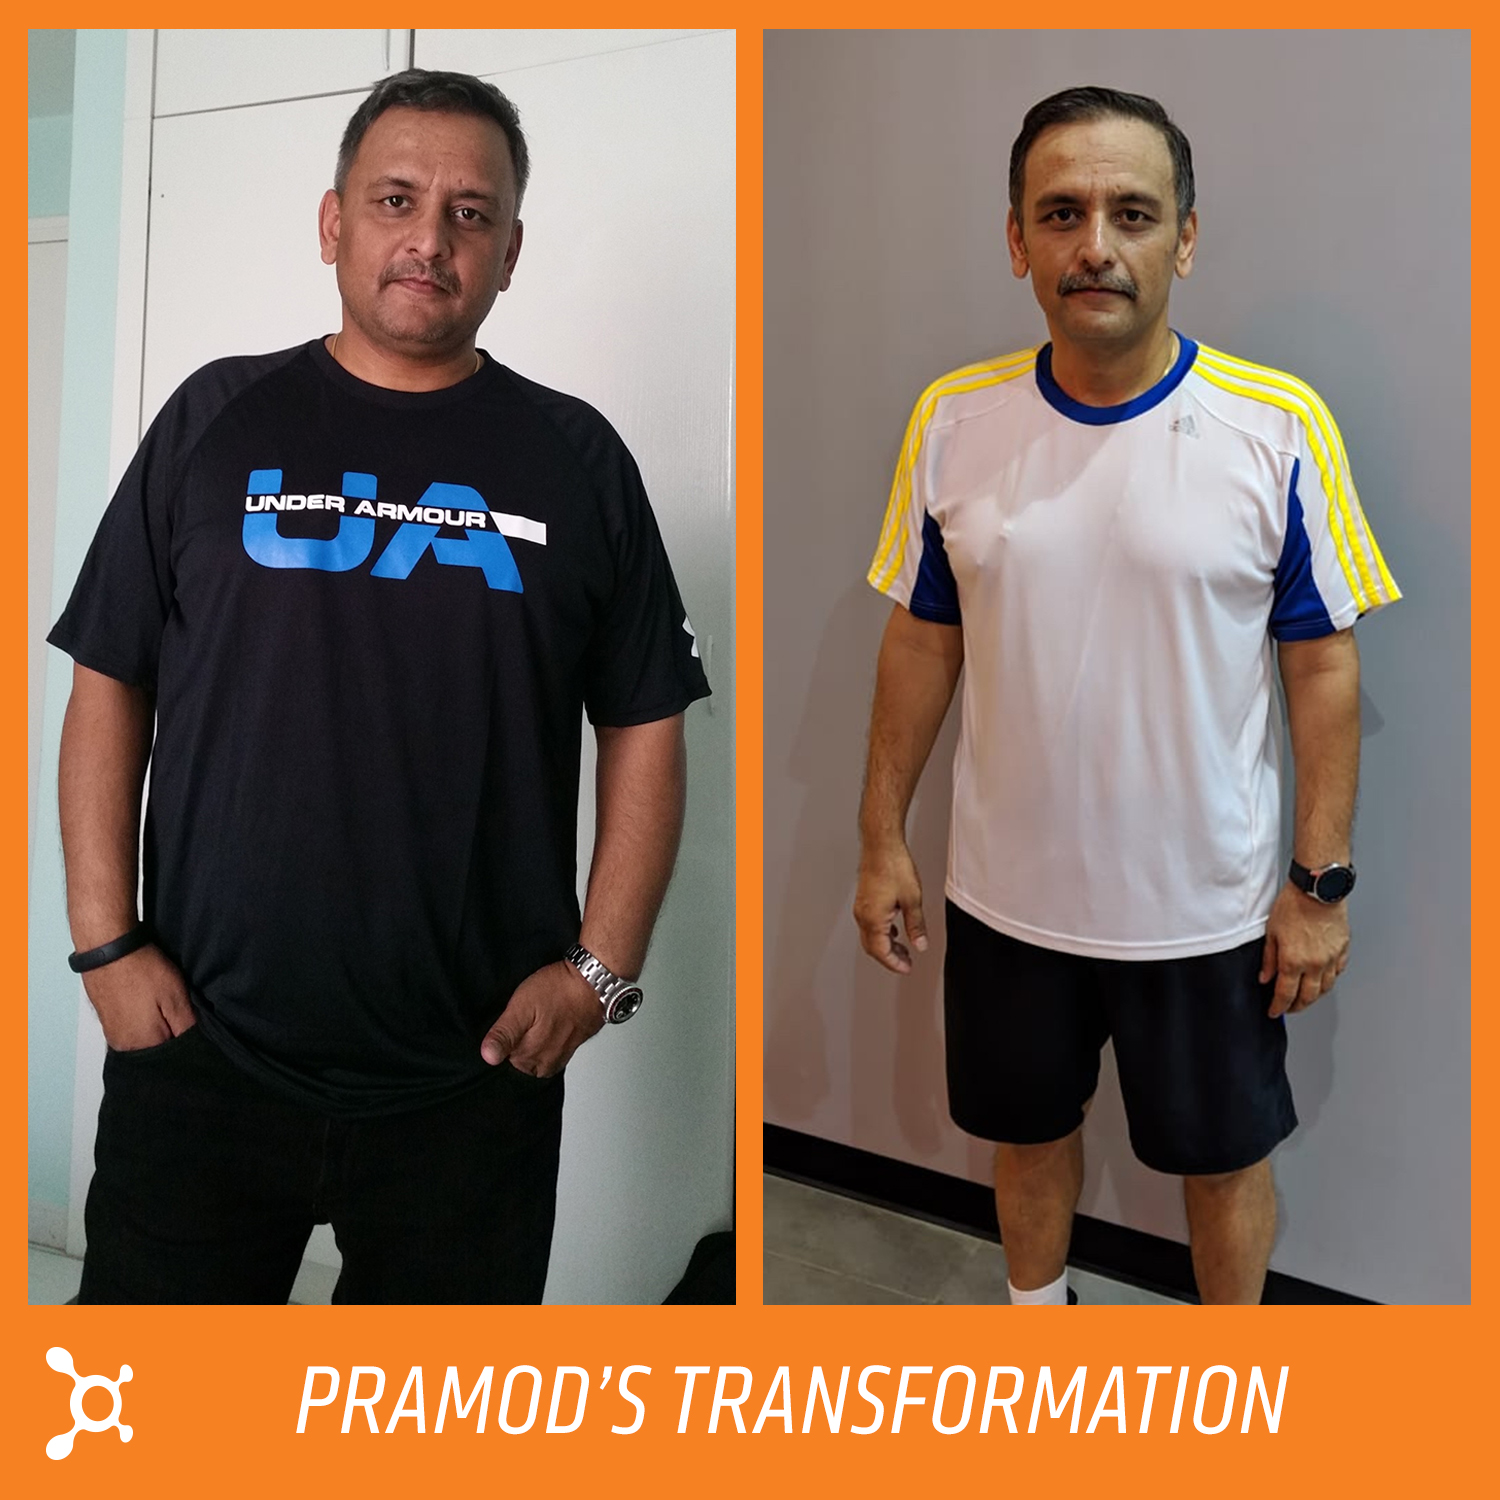 Pramod Transformation